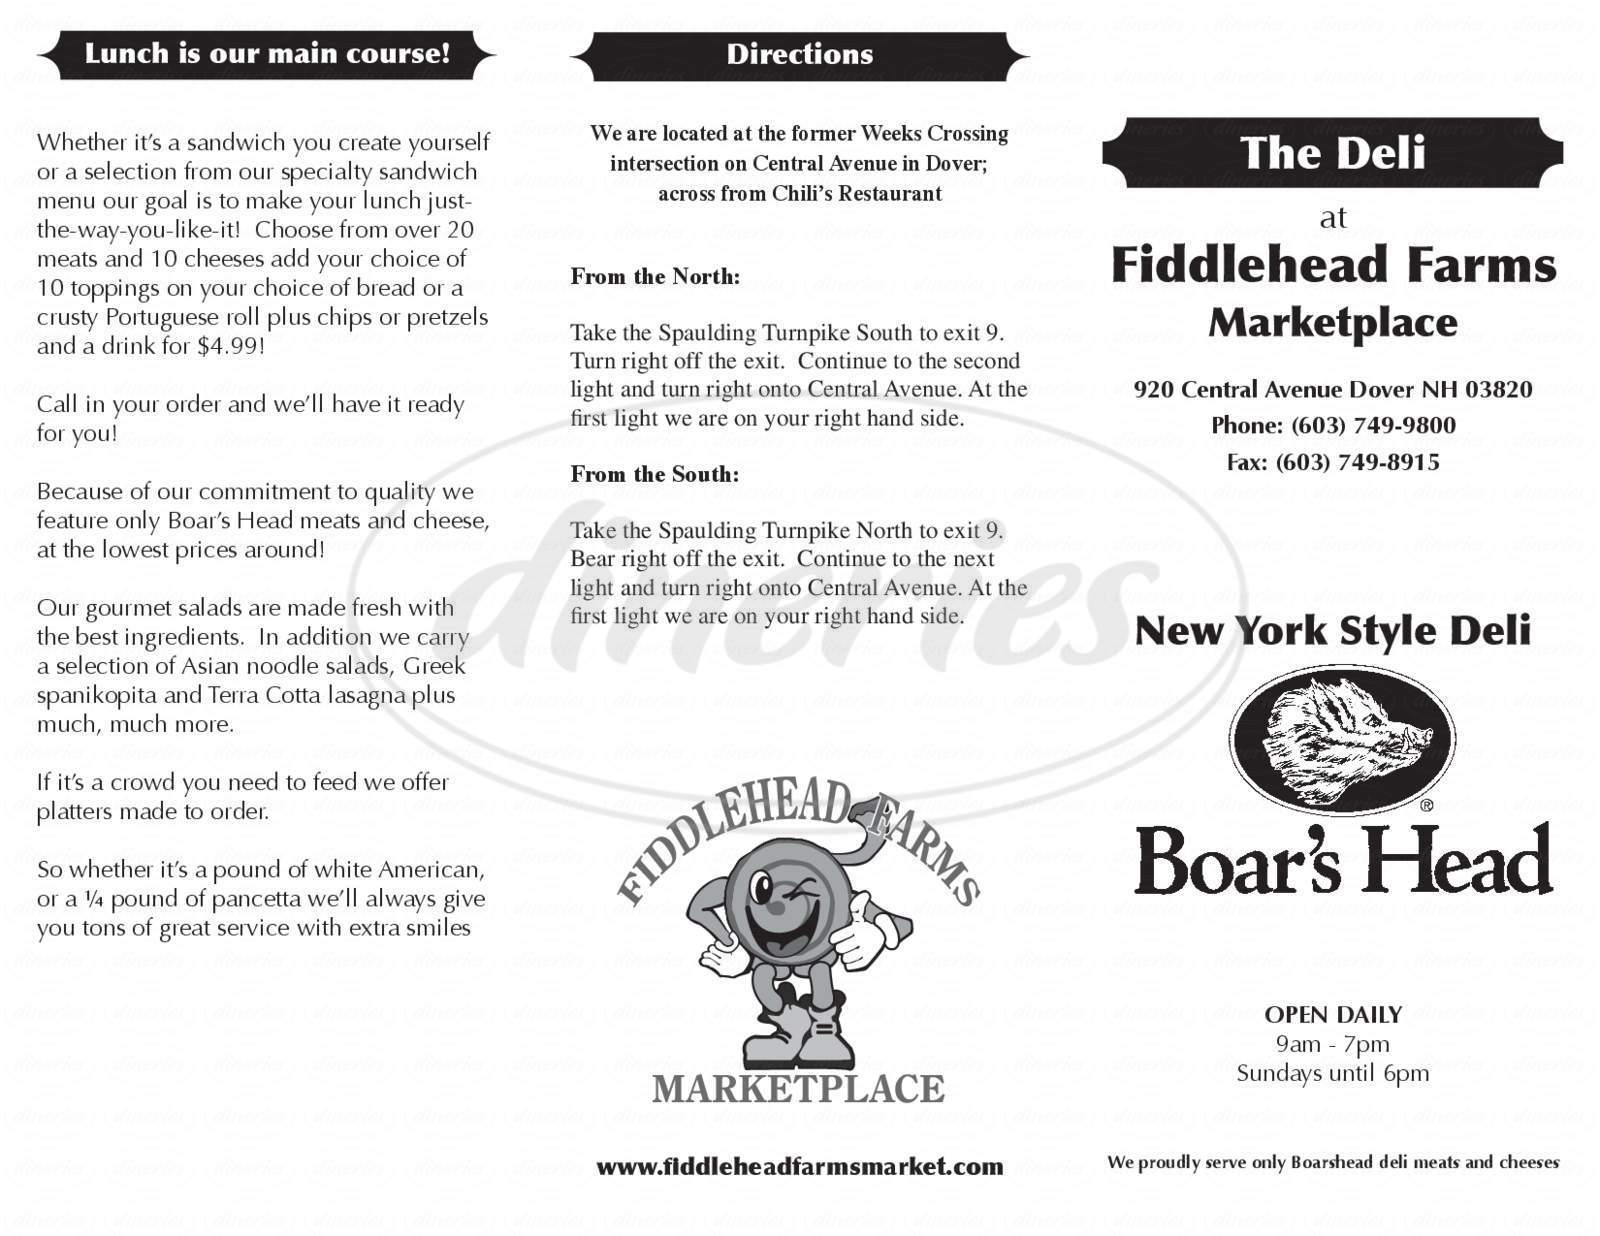 menu for Fiddlehead Farms Marketplace